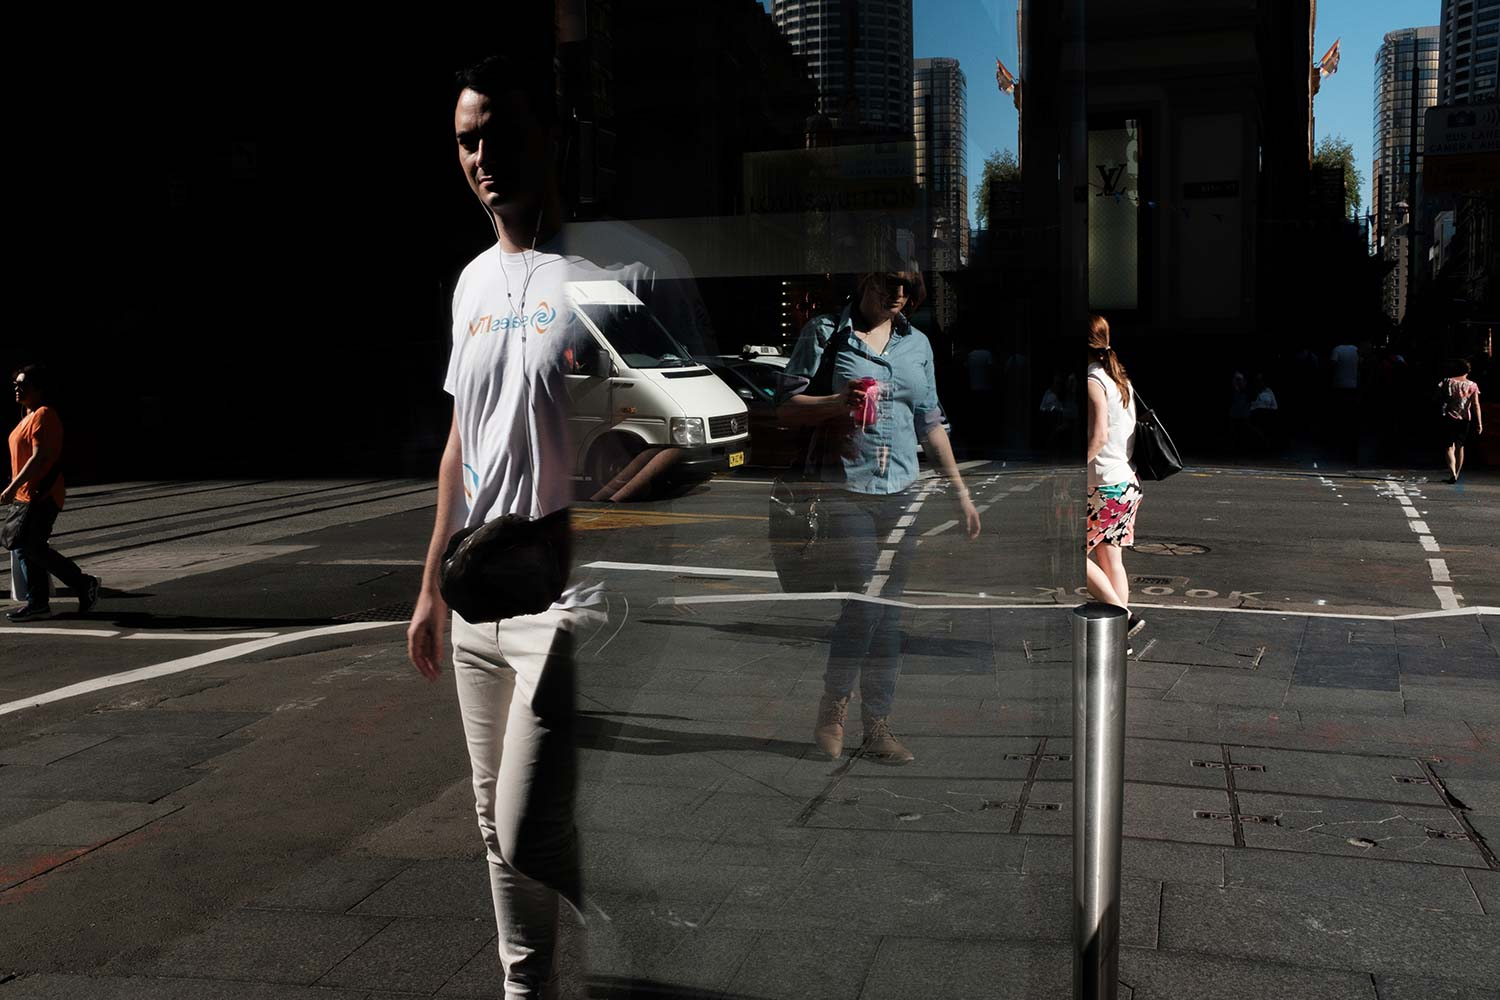 street street photo street photography life is street Jonathan Pui  photographie de rue